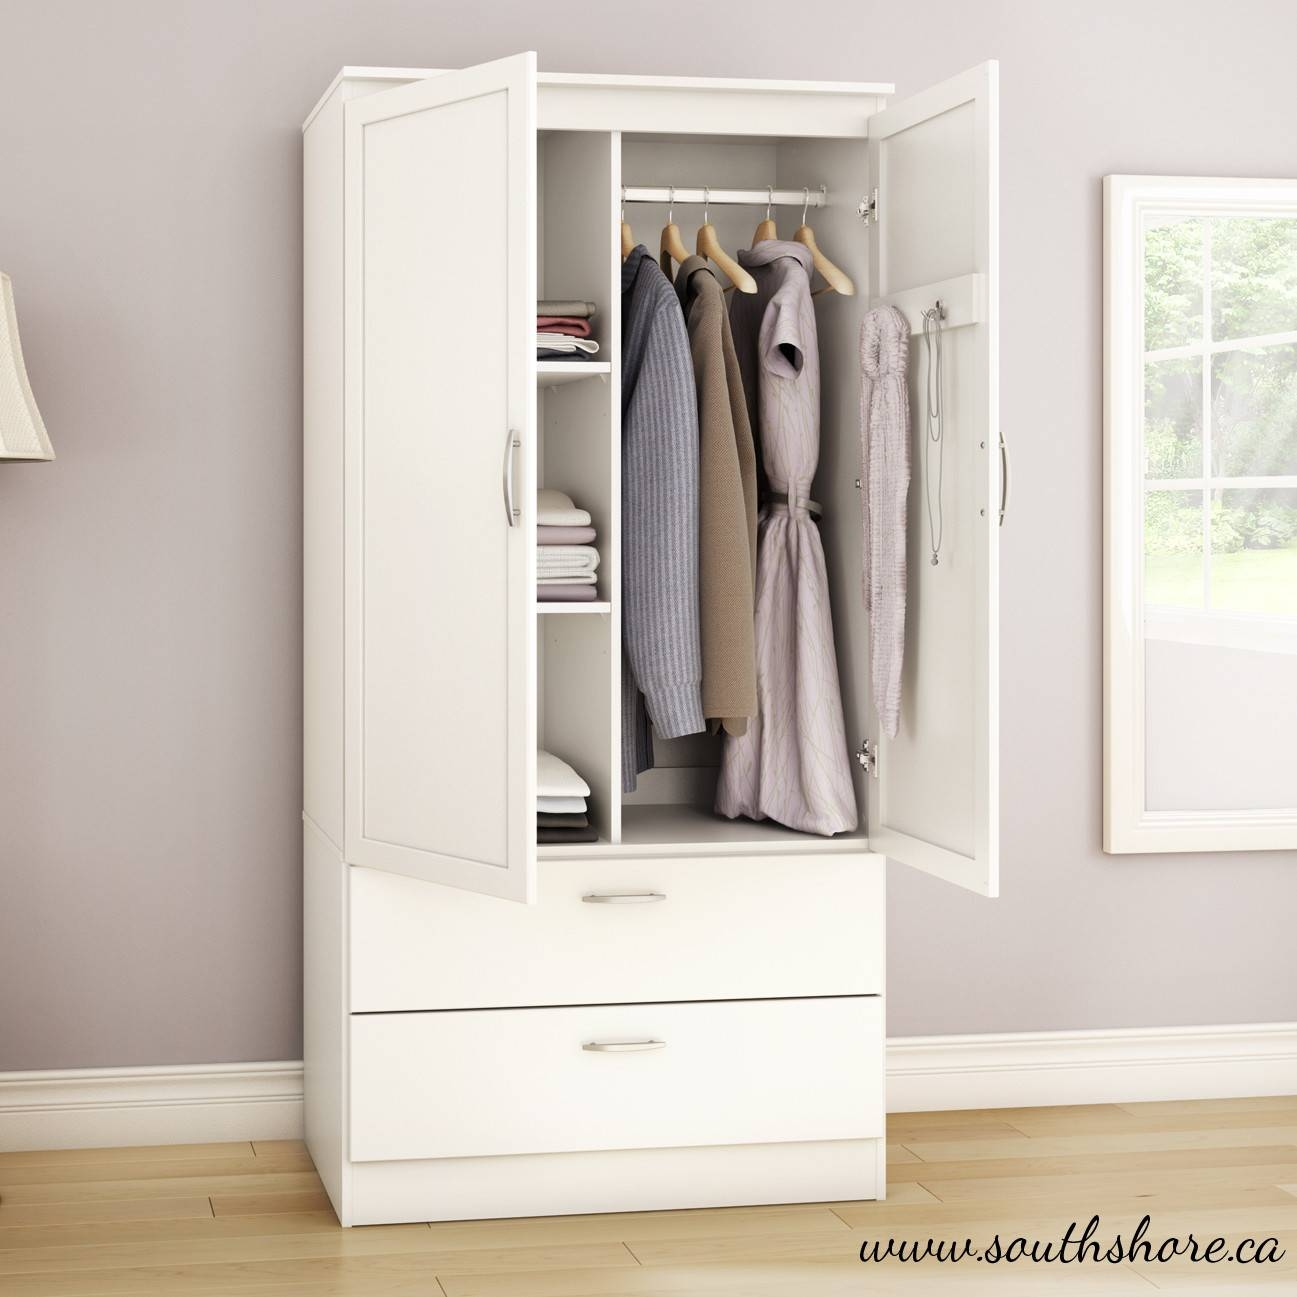 Furniture: Fancy Wardrobe Armoire For Wardrobe Organizer Idea pertaining to Cheap Wardrobes With Drawers (Image 5 of 15)